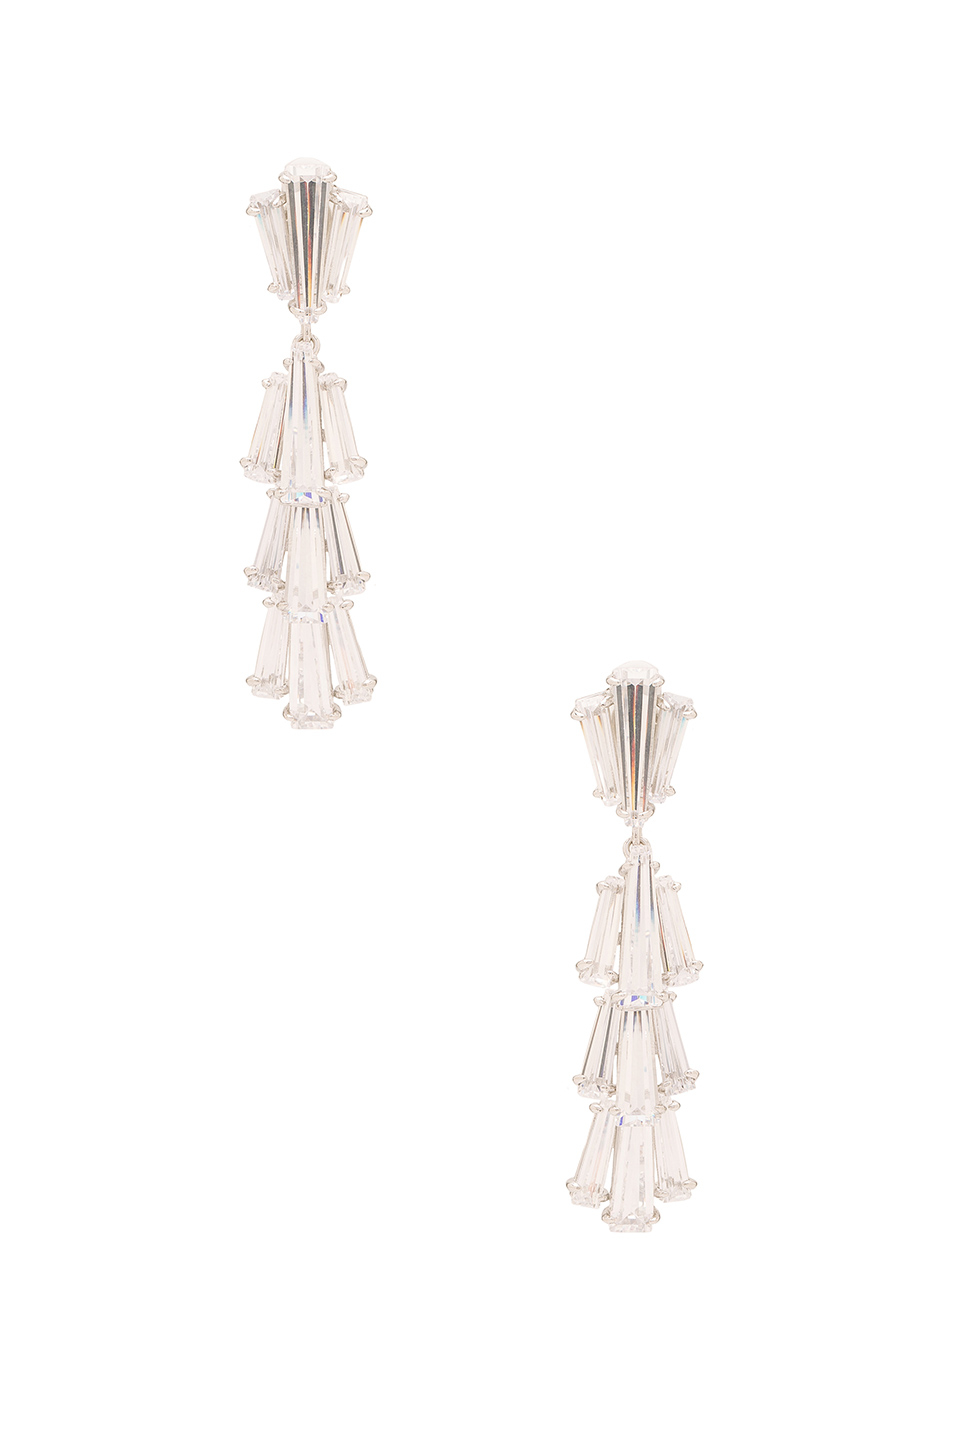 Lisa Freede Greta Earring in Metallic Silver WbU3gFHv